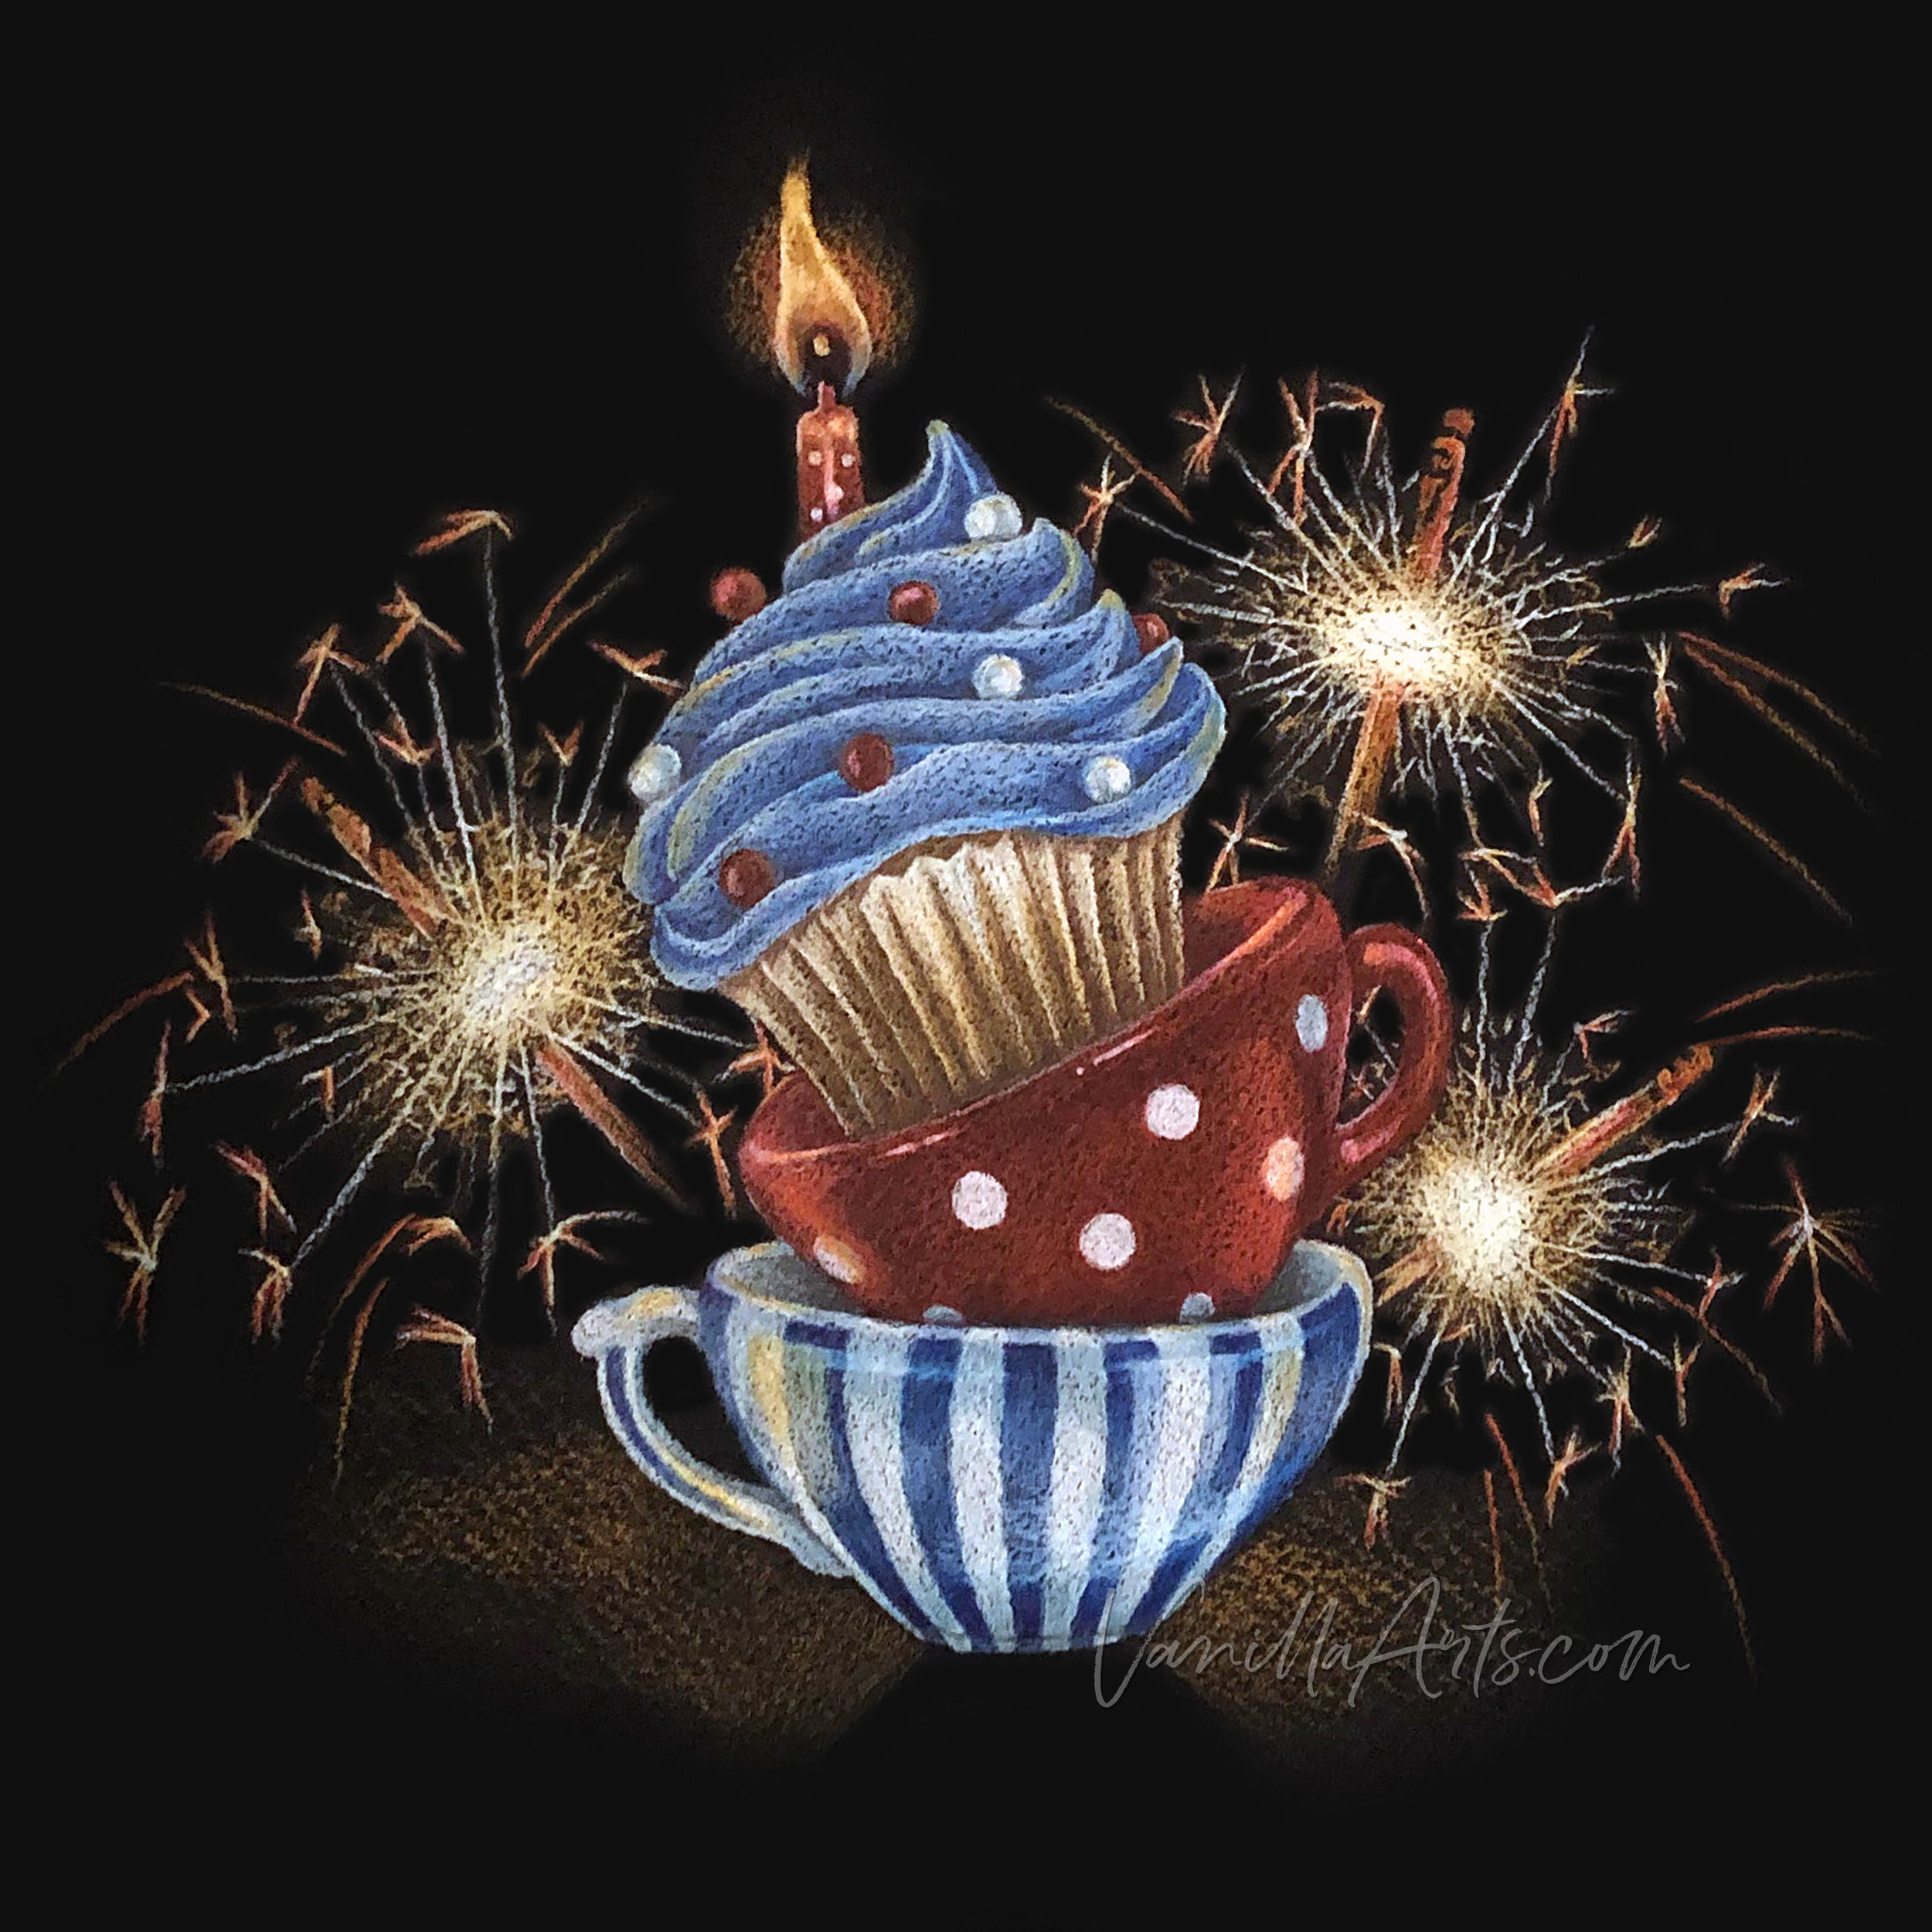 """Cupcake Blast"" colored pencil lesson by VanillaArts.com using Power Poppy's ""Cuppa Cupcake"""